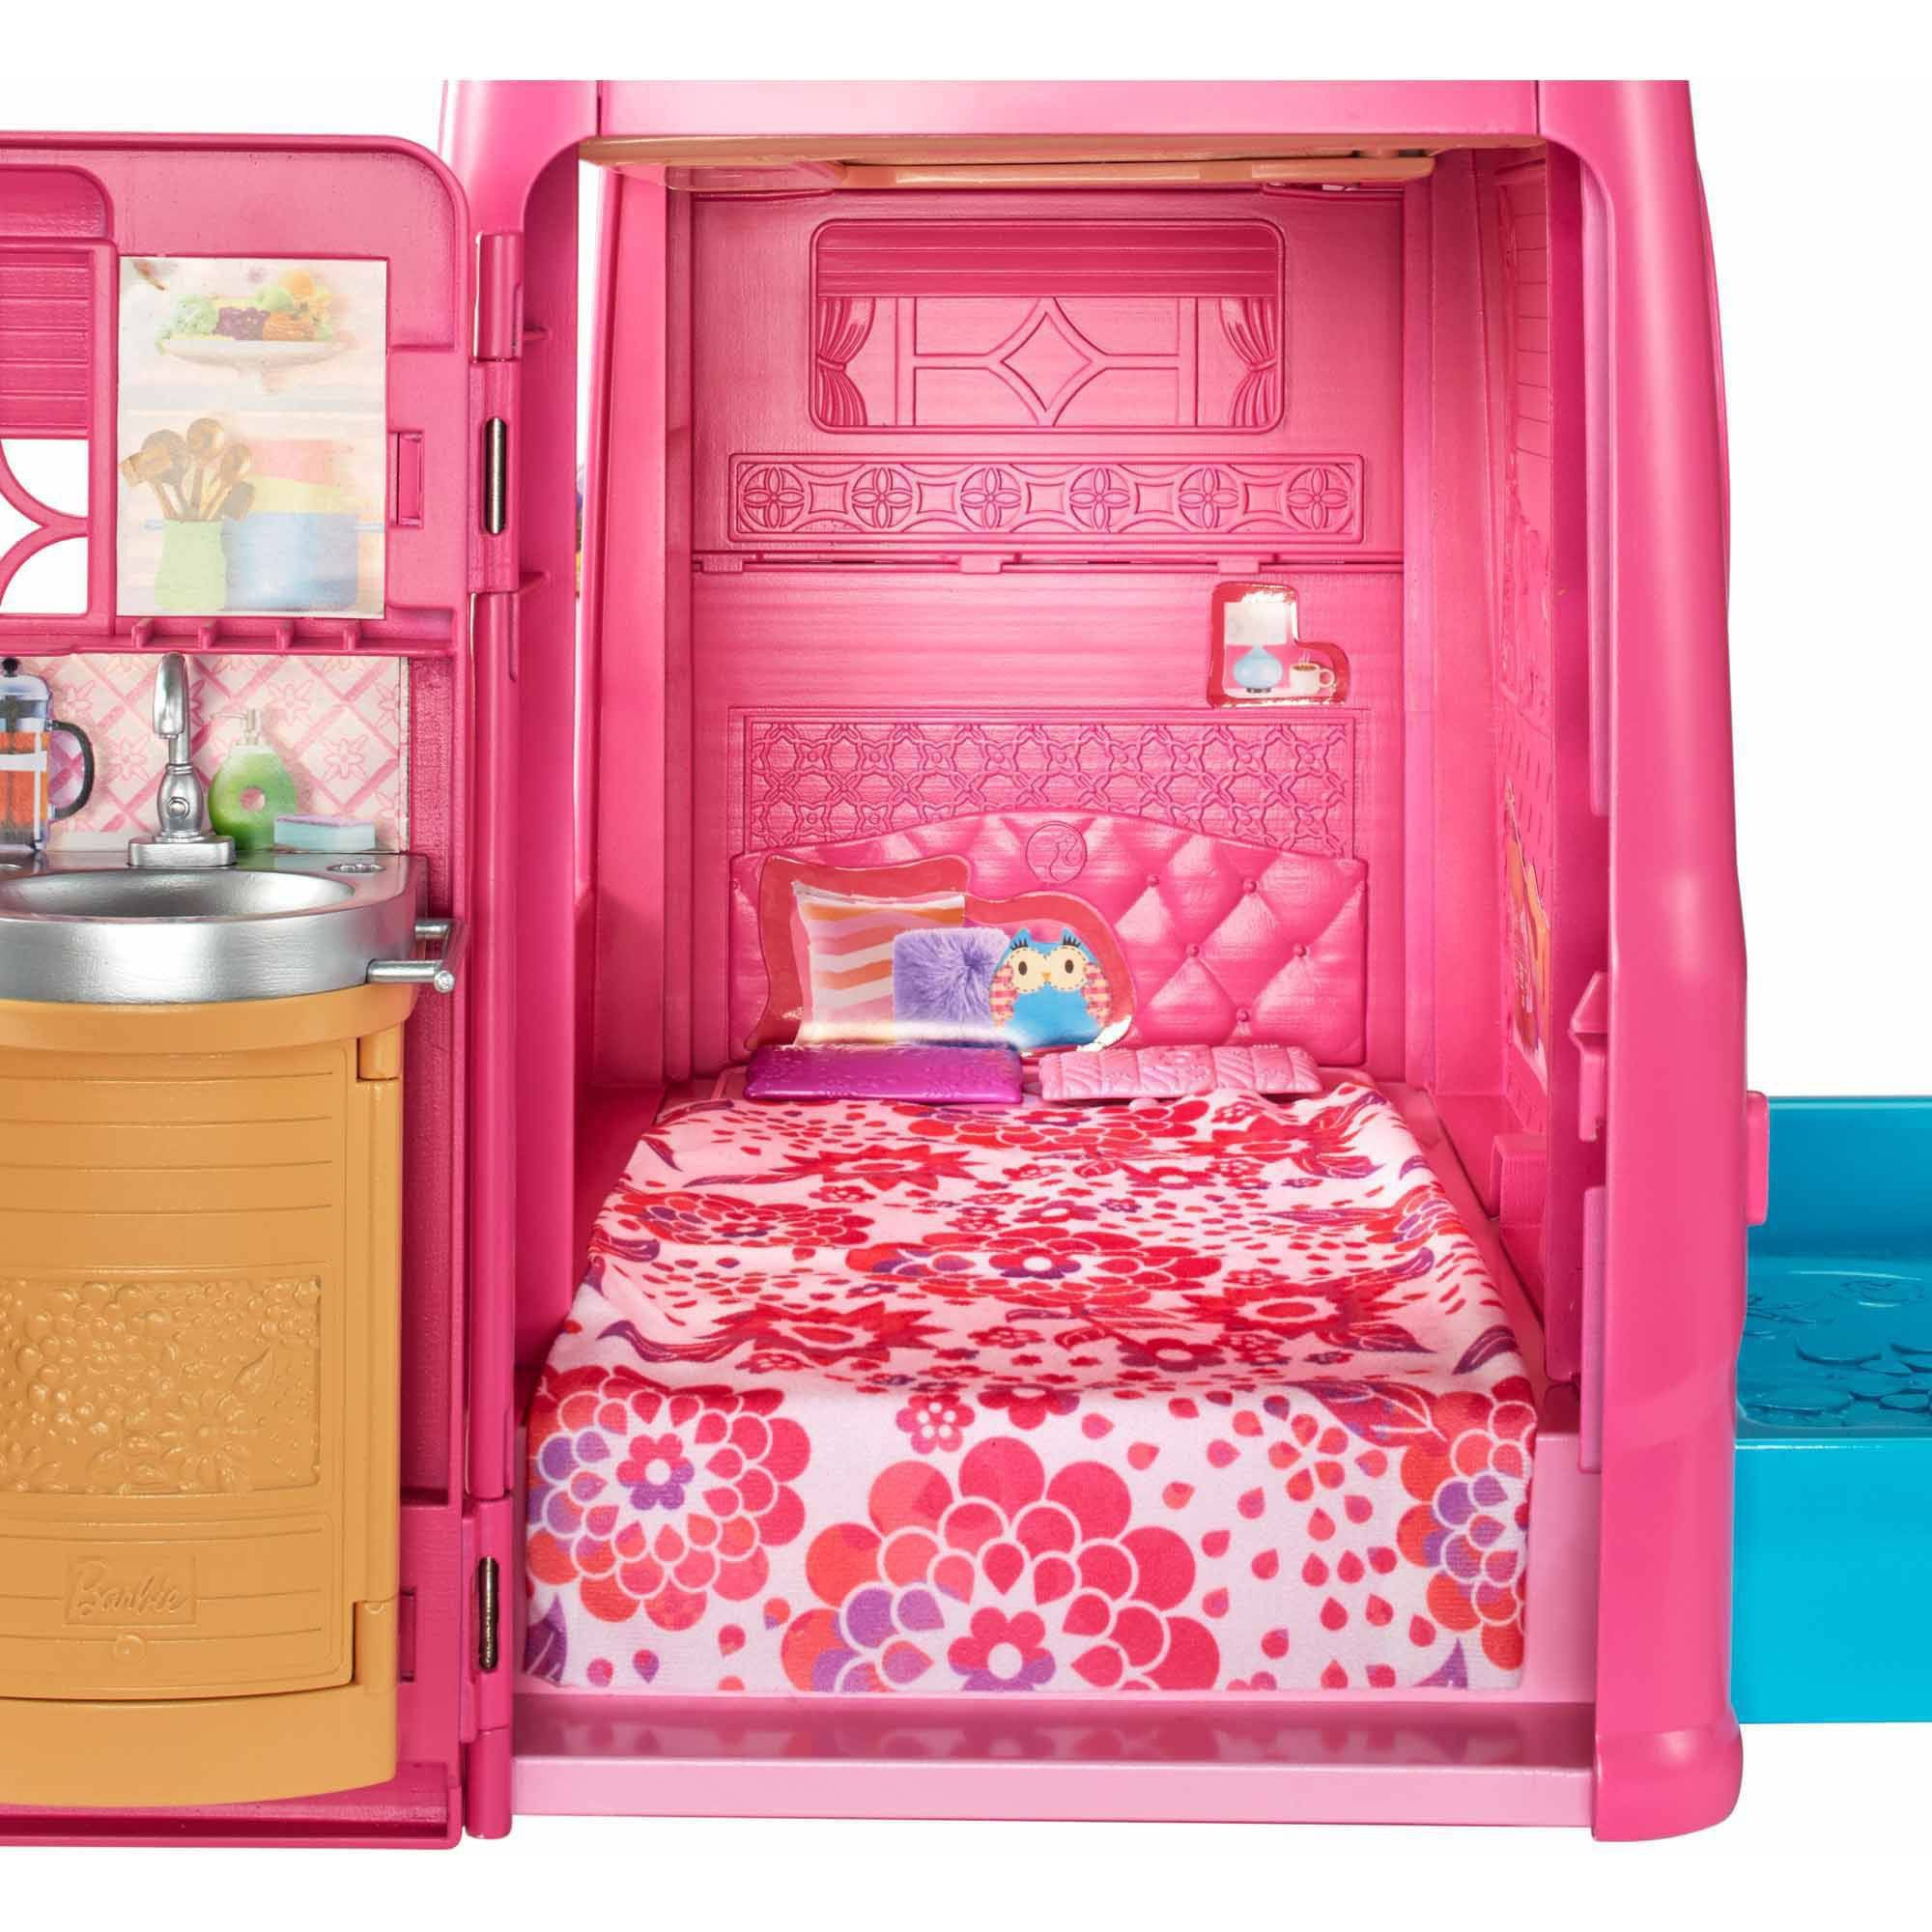 pictures small charming bedrooms paints colors doll bedroom fascinating boy images of girl prince for barbie decoration paint and face little ideas christ jesus room fabulous